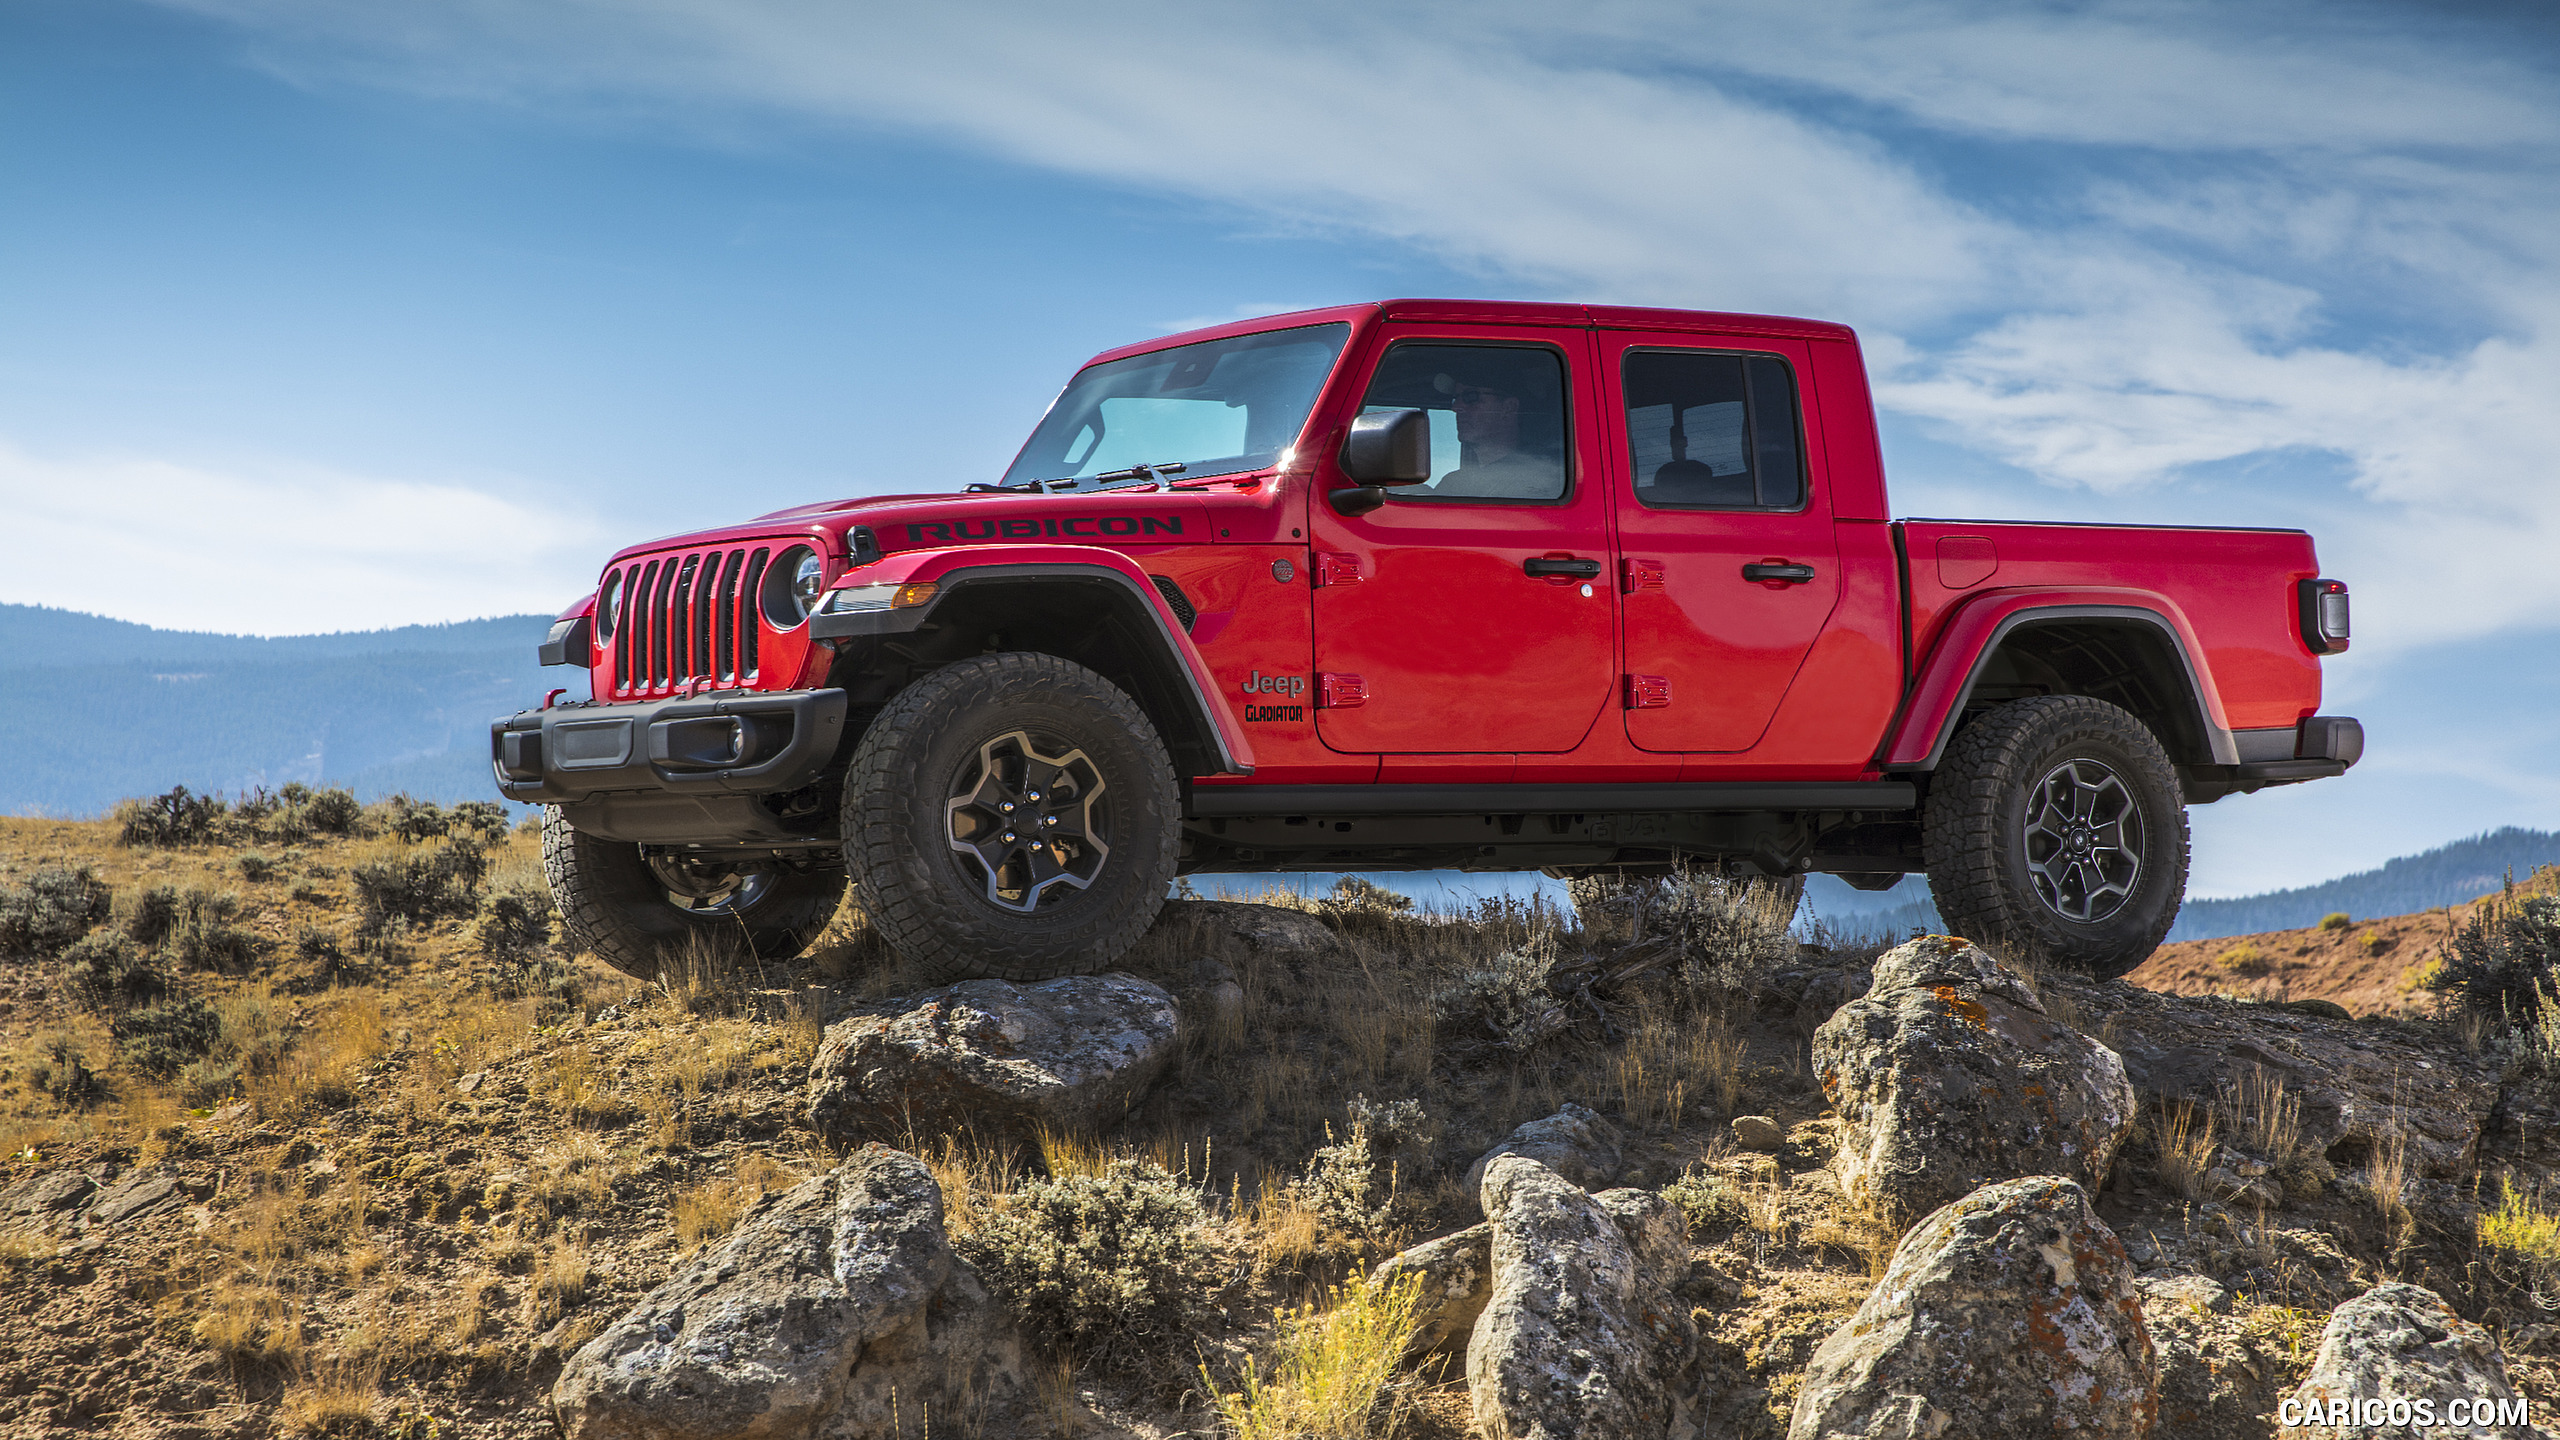 2020 Jeep Gladiator Rubicon   Side HD Wallpaper 118 2560x1440